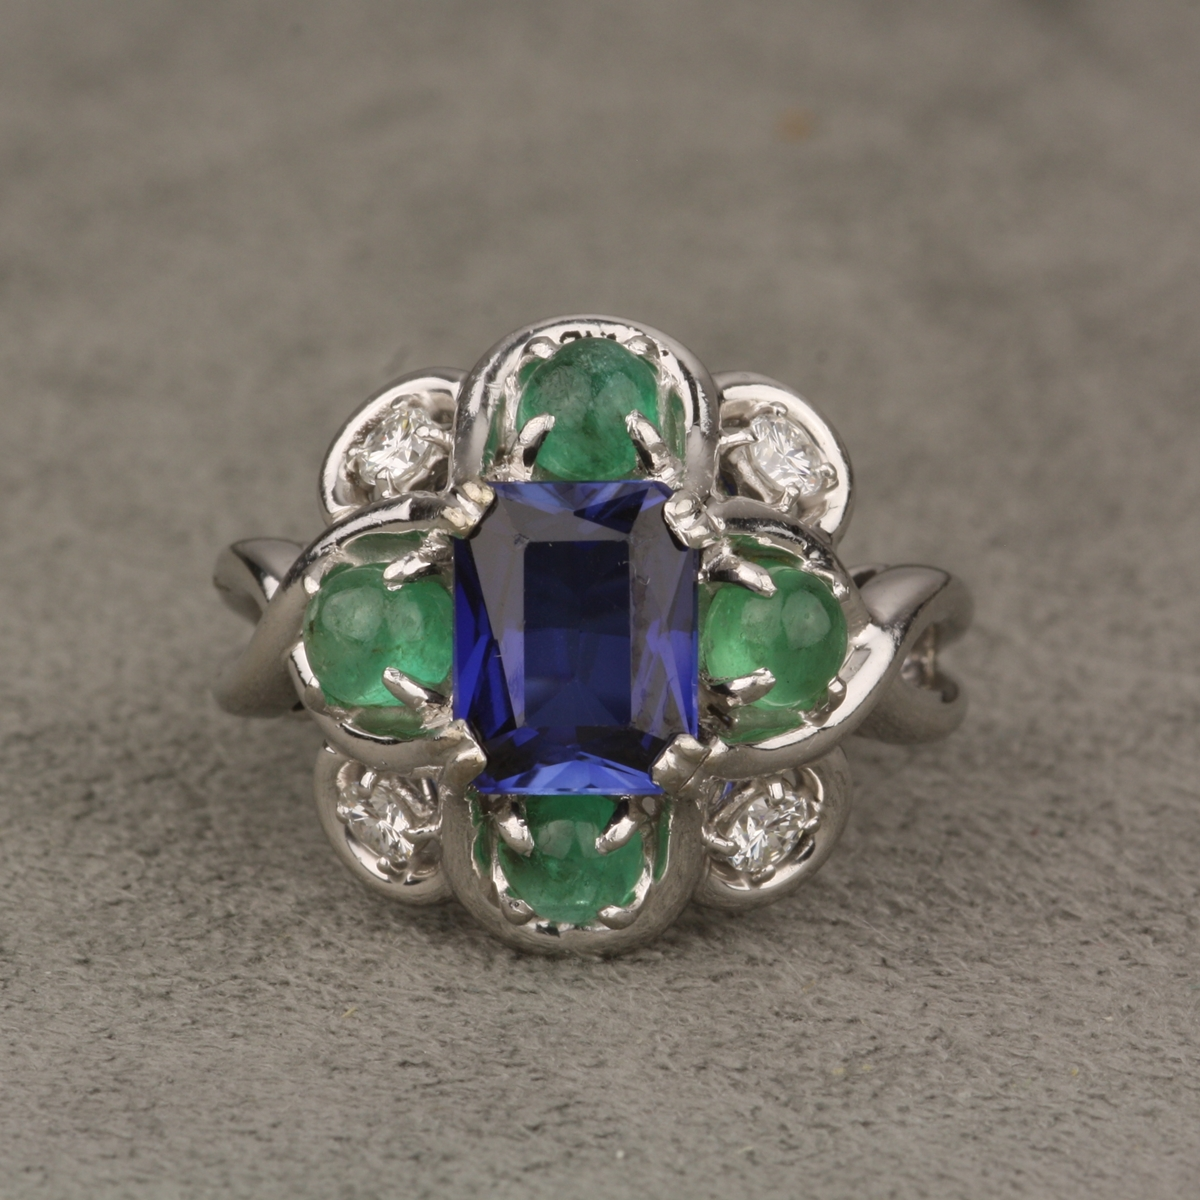 emerald rings differences between the real and synthetic. Pre-Owned-Platinum-Synthetic-Sapphire-Emerald-And-Diamond- Emerald Rings Differences Between The Real And Synthetic